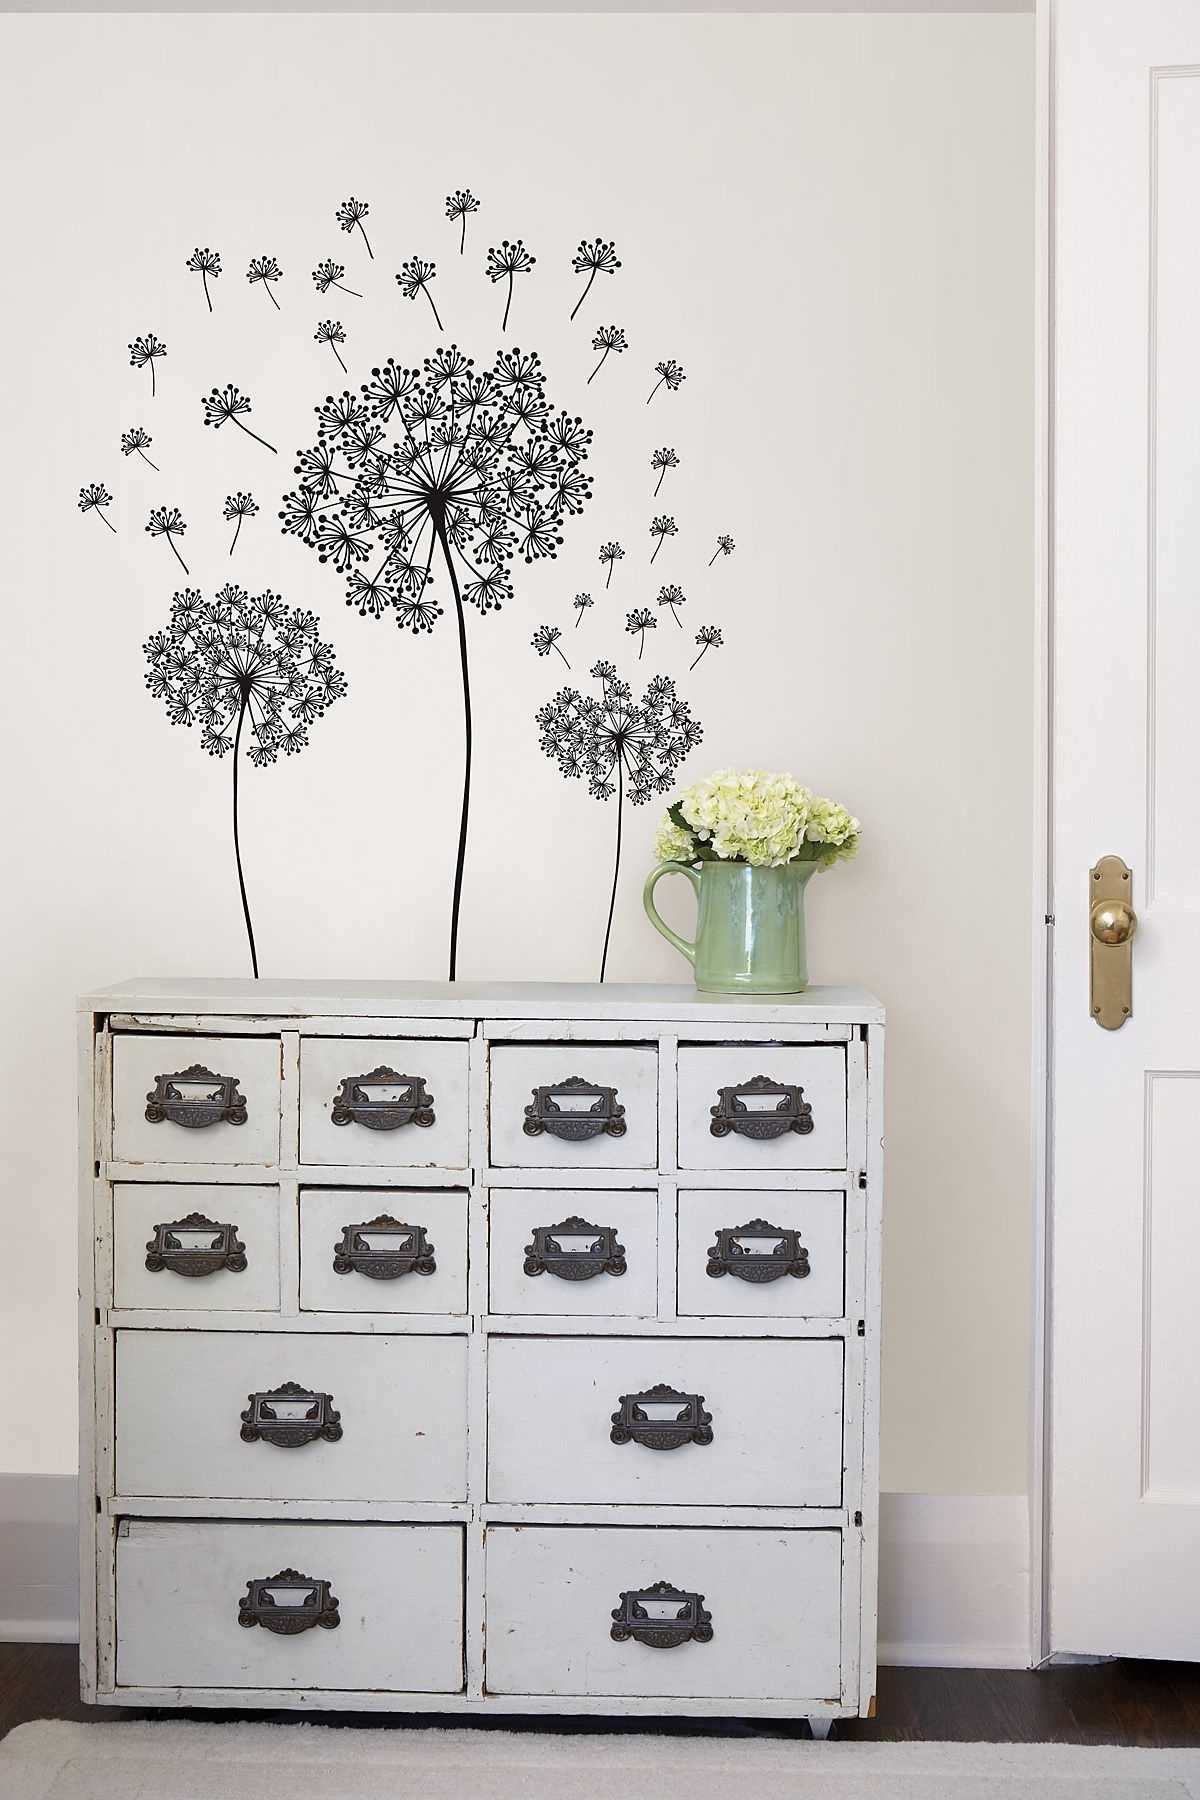 Dandelion Wall Art Sticker Kit Throughout 2018 Dandelion Wall Art (View 6 of 20)